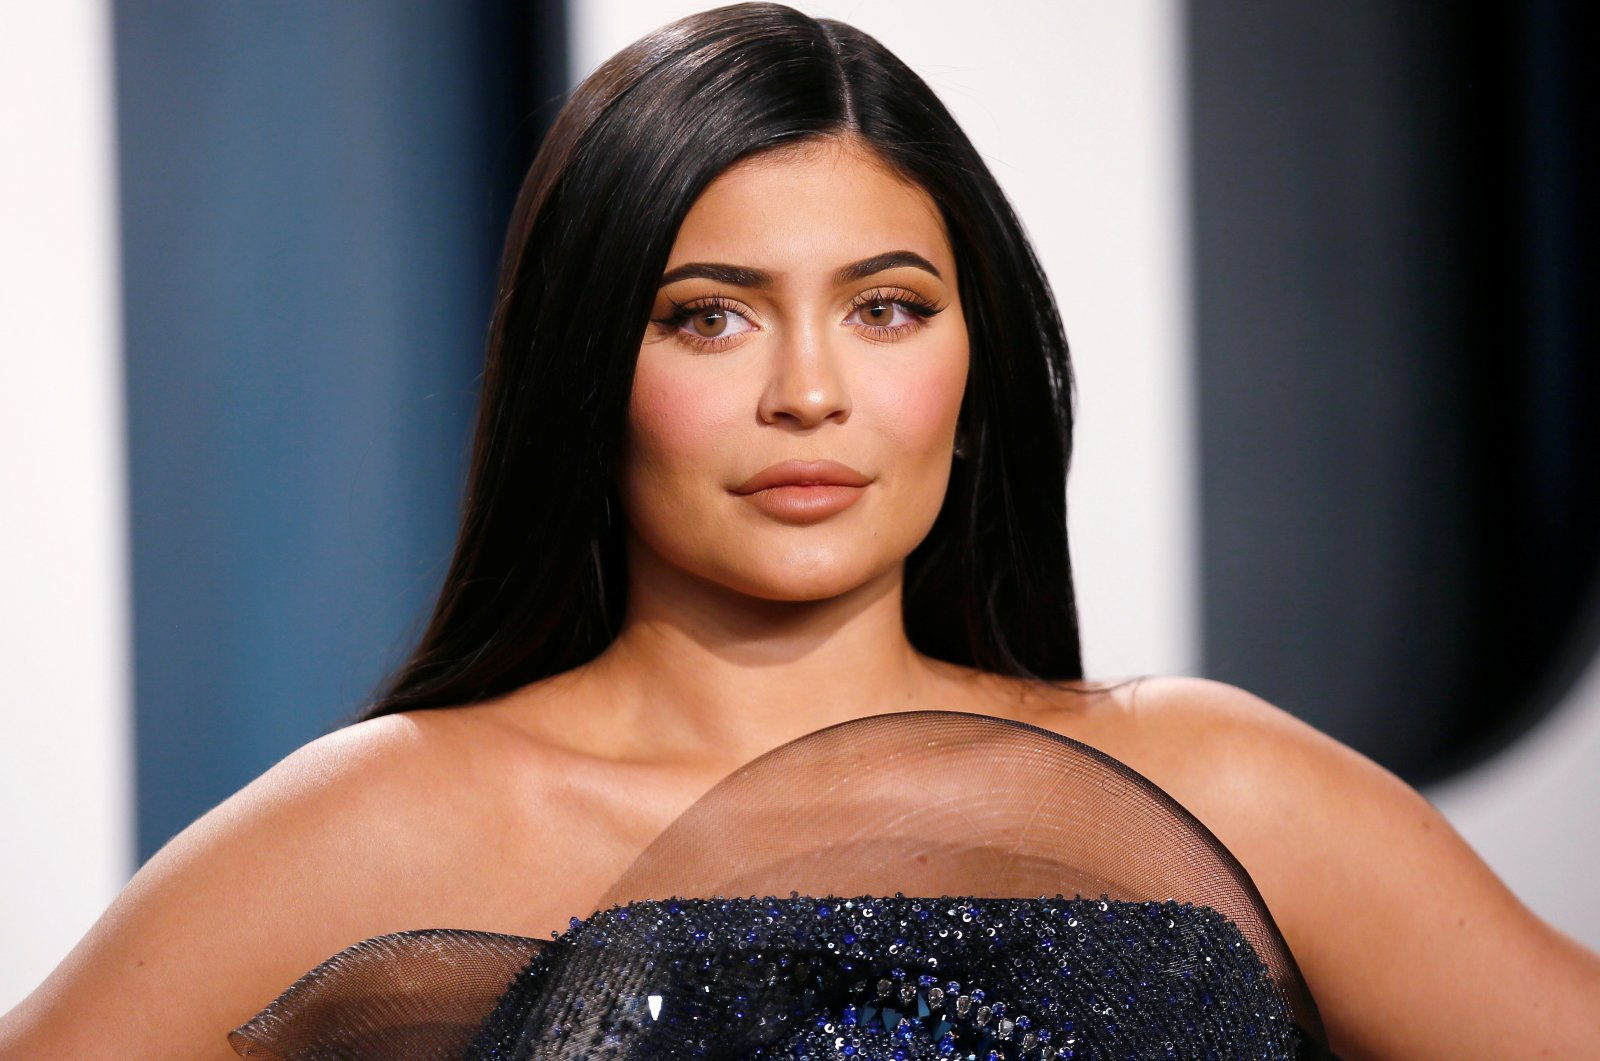 Kylie Jenner attends the Vanity Fair Oscar party in Beverly Hills during the 92nd Academy Awards, in Los Angeles, California, U.S., Feb. 9, 2020. (Reuters Photo)